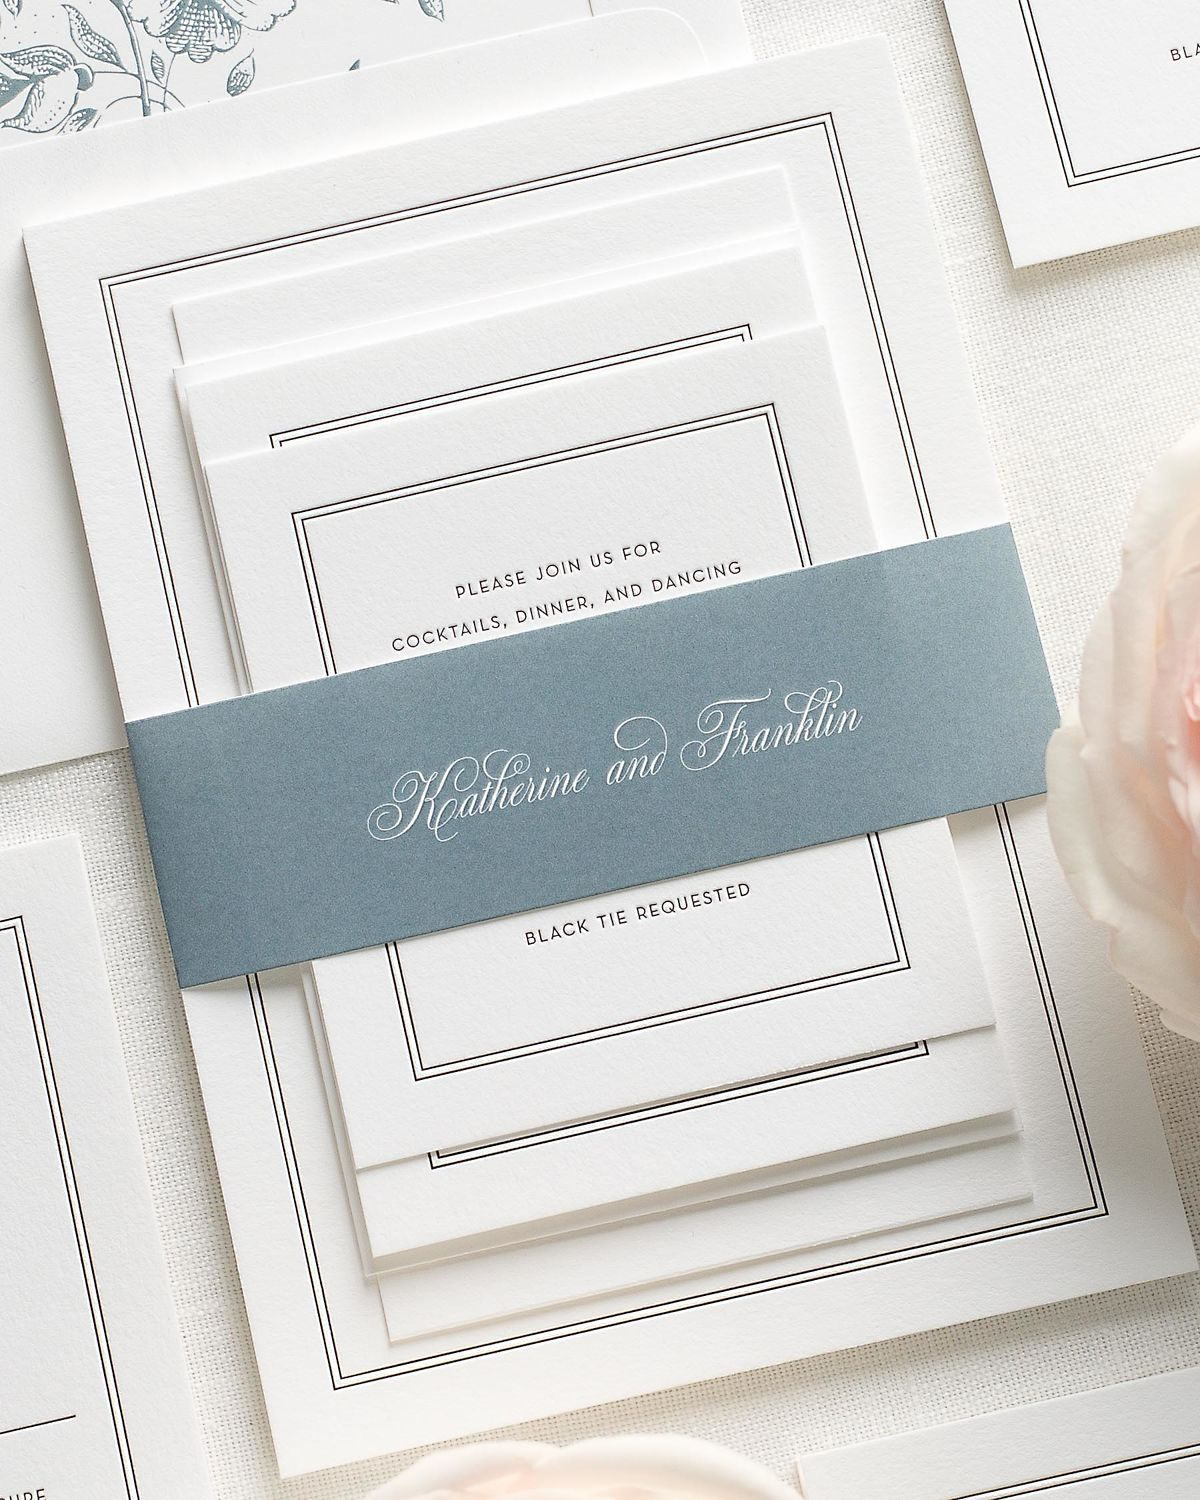 Wedding Invitations with Blue Gray Belly Band and Letterpress Printing